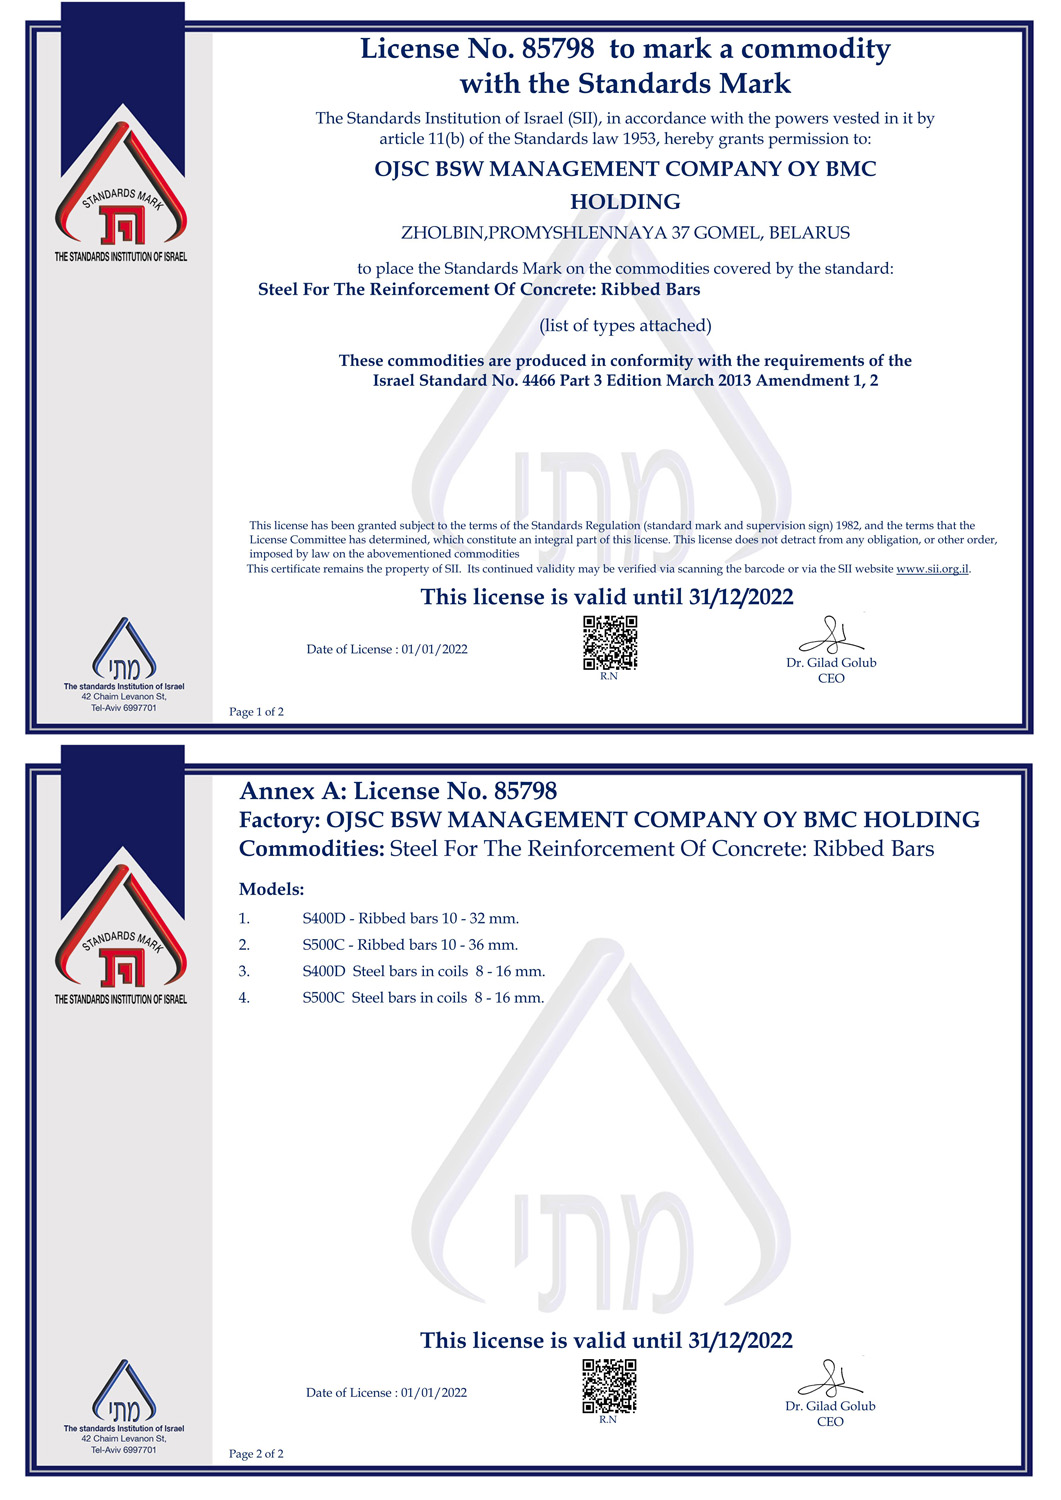 Certificate № 85798 SII (Israel) for production of  reinforcing bars S400D Ø10-32 mm,  S500C Ø10-36 mm and reinforcing steel in coils S400D, S500C  Ø8-16 mm according to standard SI 4466-3-2016